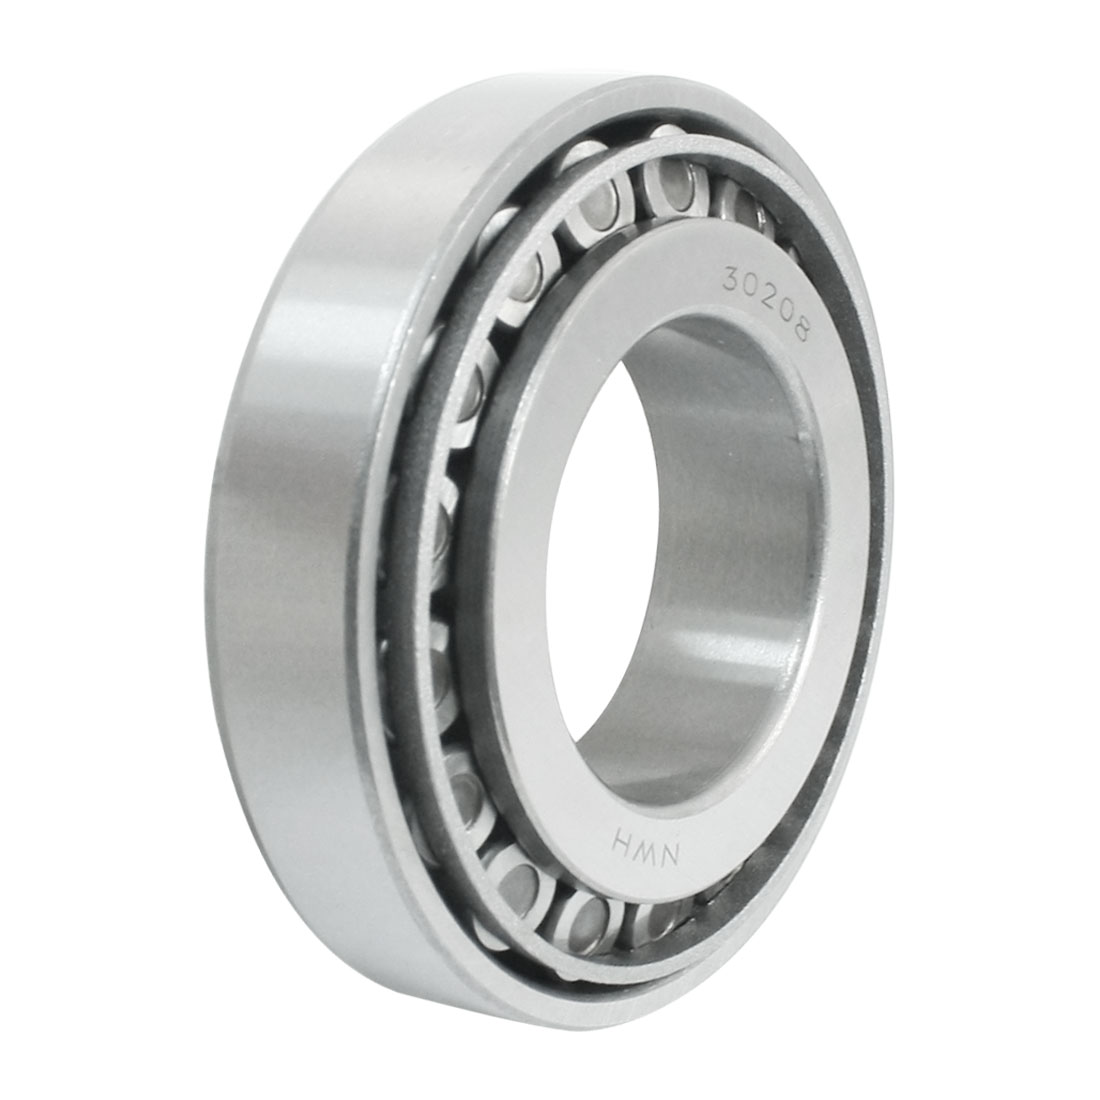 Industrial 30208 Tapered Roller Rolling Wheel Bearing 40mmx80mmx20mm